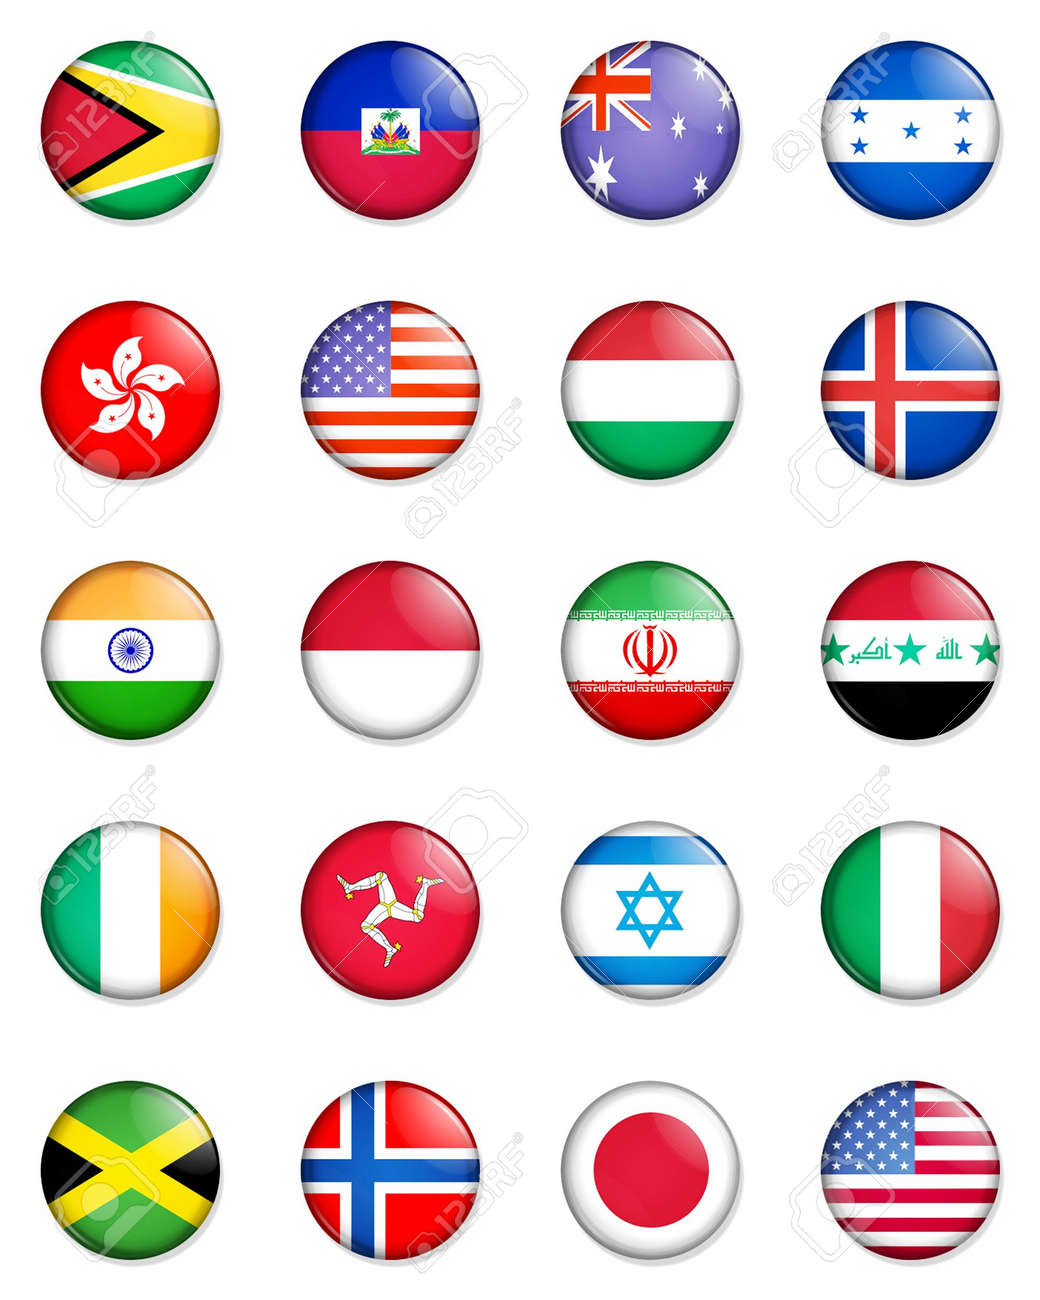 A selection of the flags of the nations of the world done in the style of small retro button badges. Stock Photo - 1831236